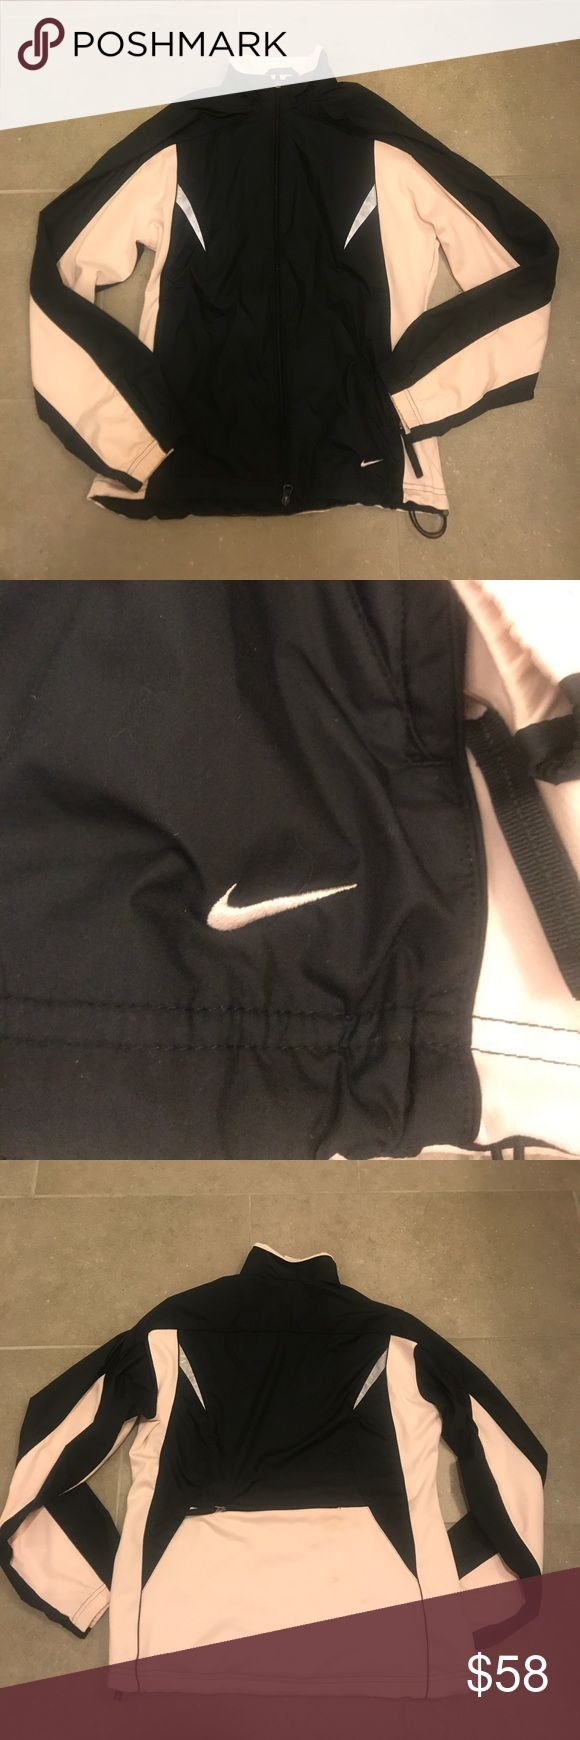 Nike Waterproof Jacket Nike Waterproof Jacket; Black and Light Pink; Long Sleeves; Zip Front Closure; Reflective Detail on Front and Back; Pockets; Zip Pocket Feature in Back; Drawstring Closure at Hem; Lined; Excellent Condition Nike Jackets & Coats